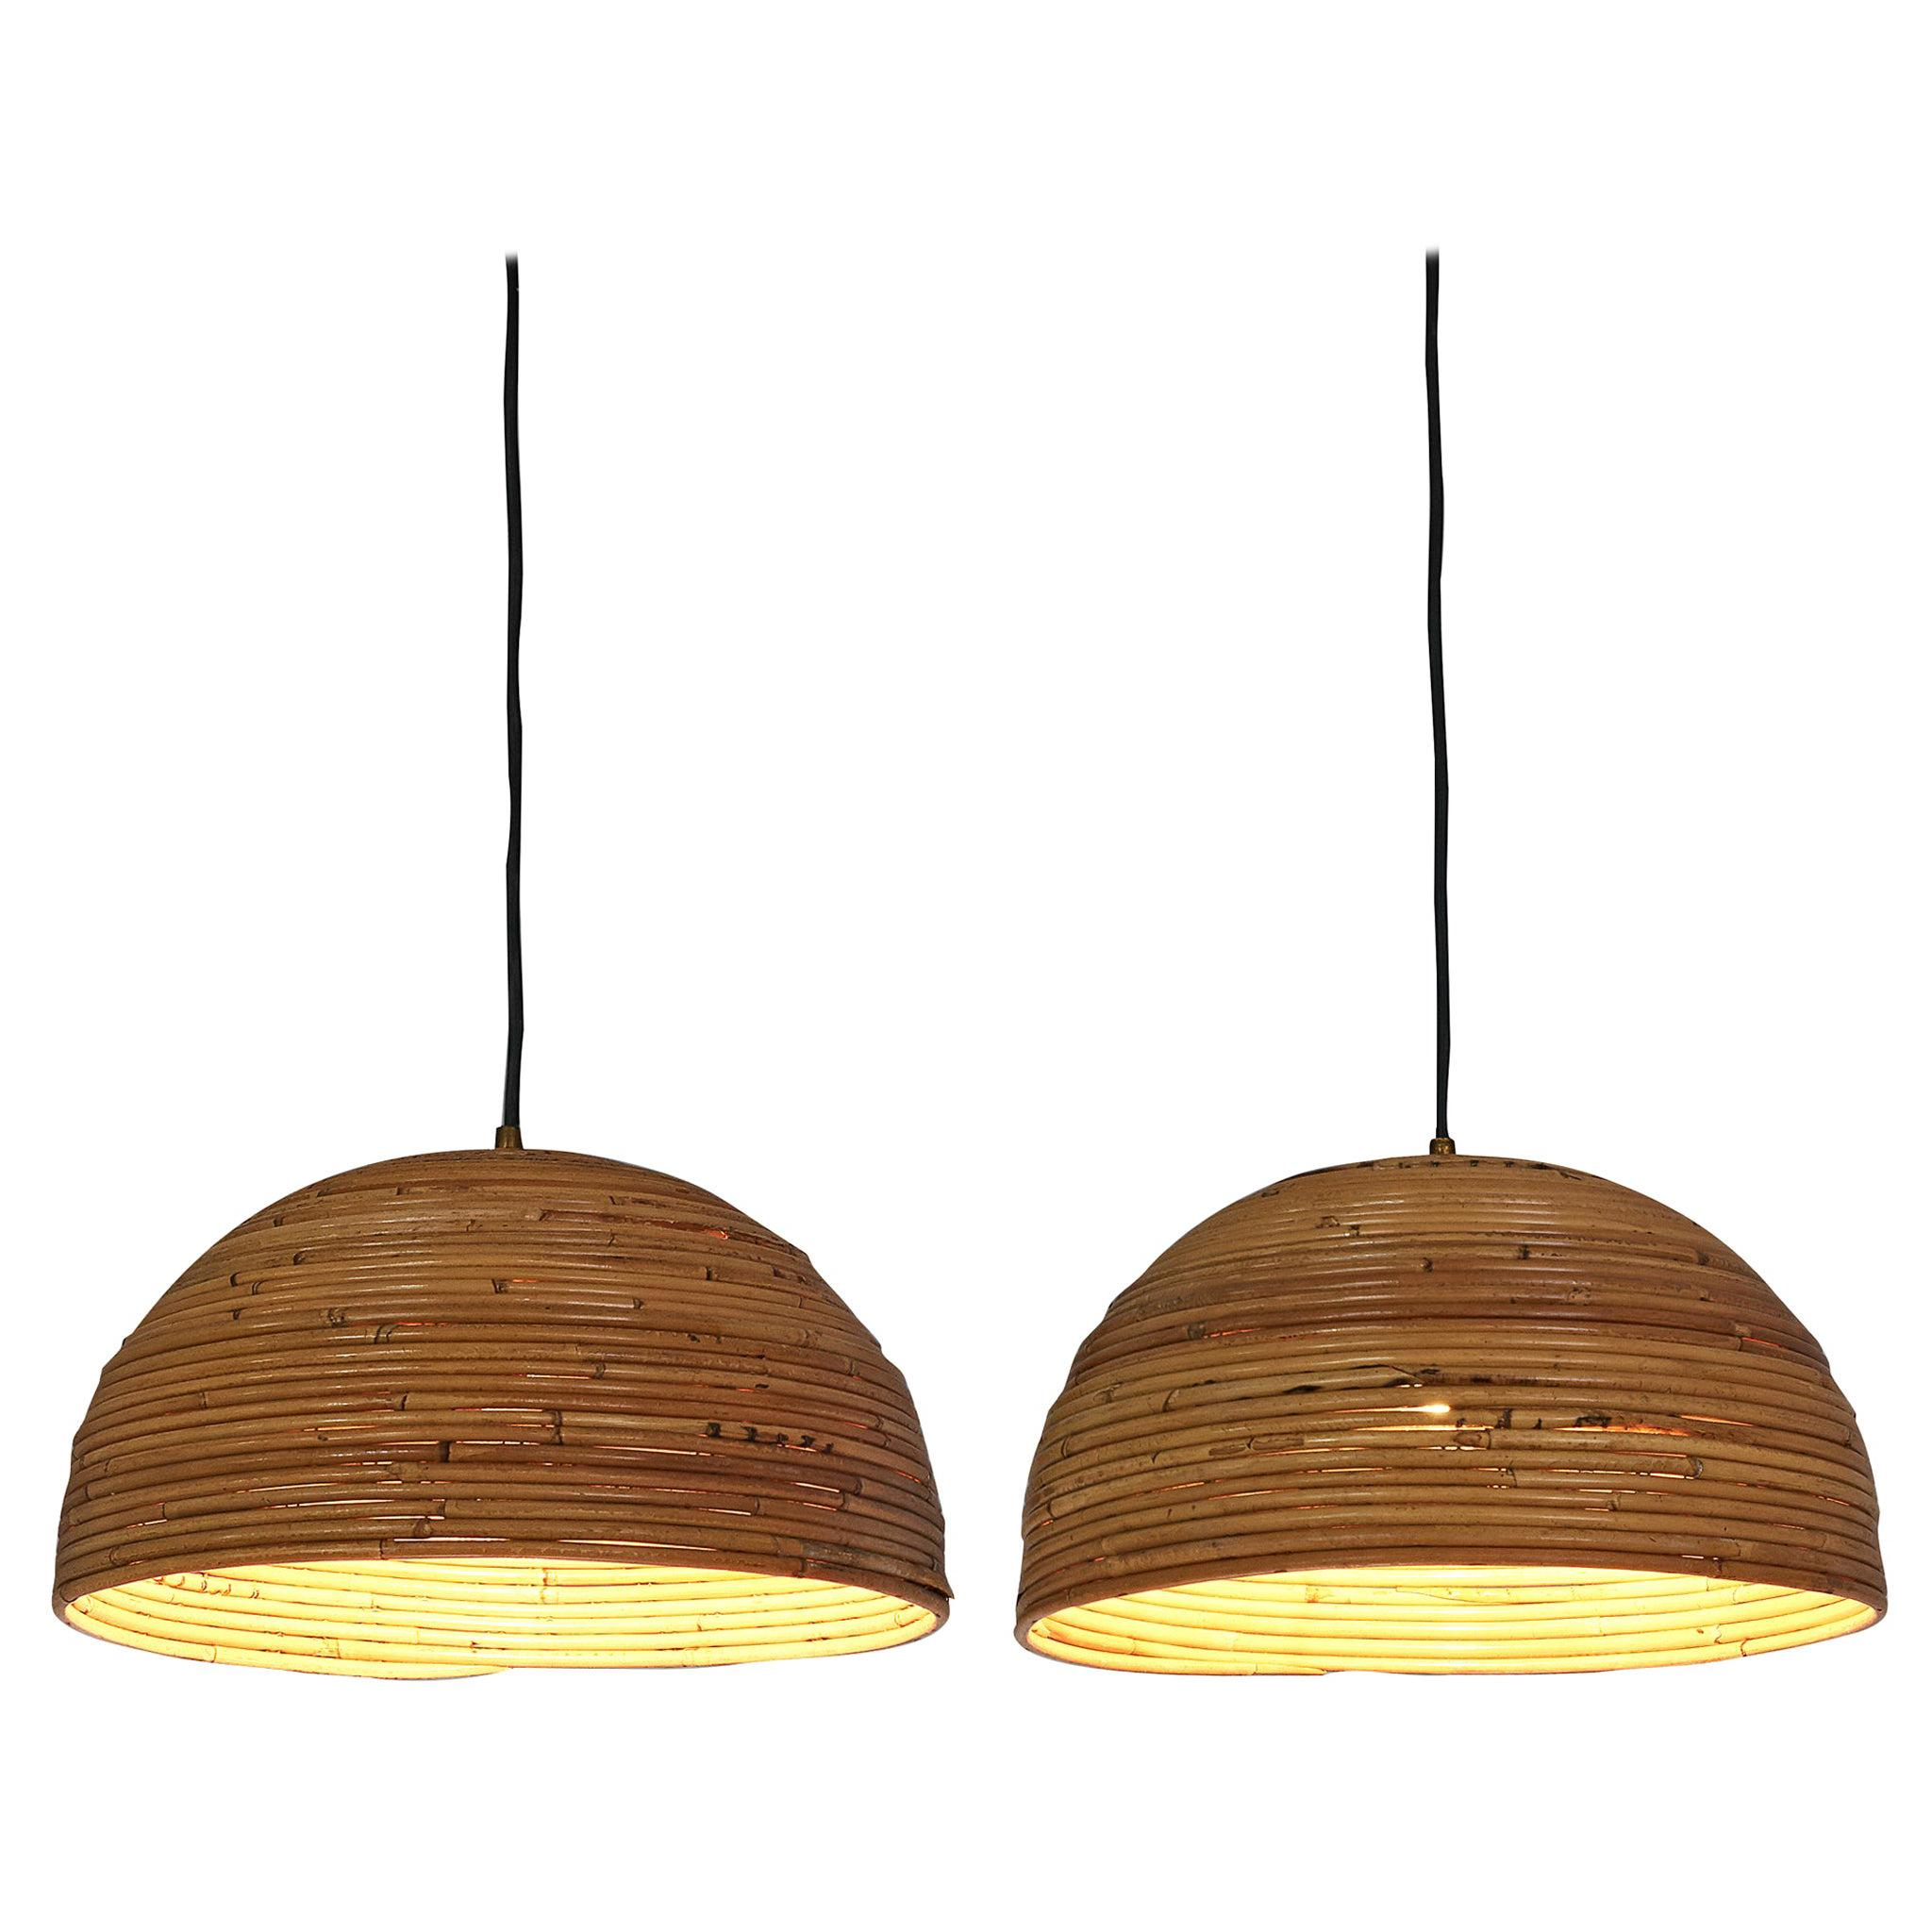 Pair of Dome Pendants in Bamboo Bentwood and Brass